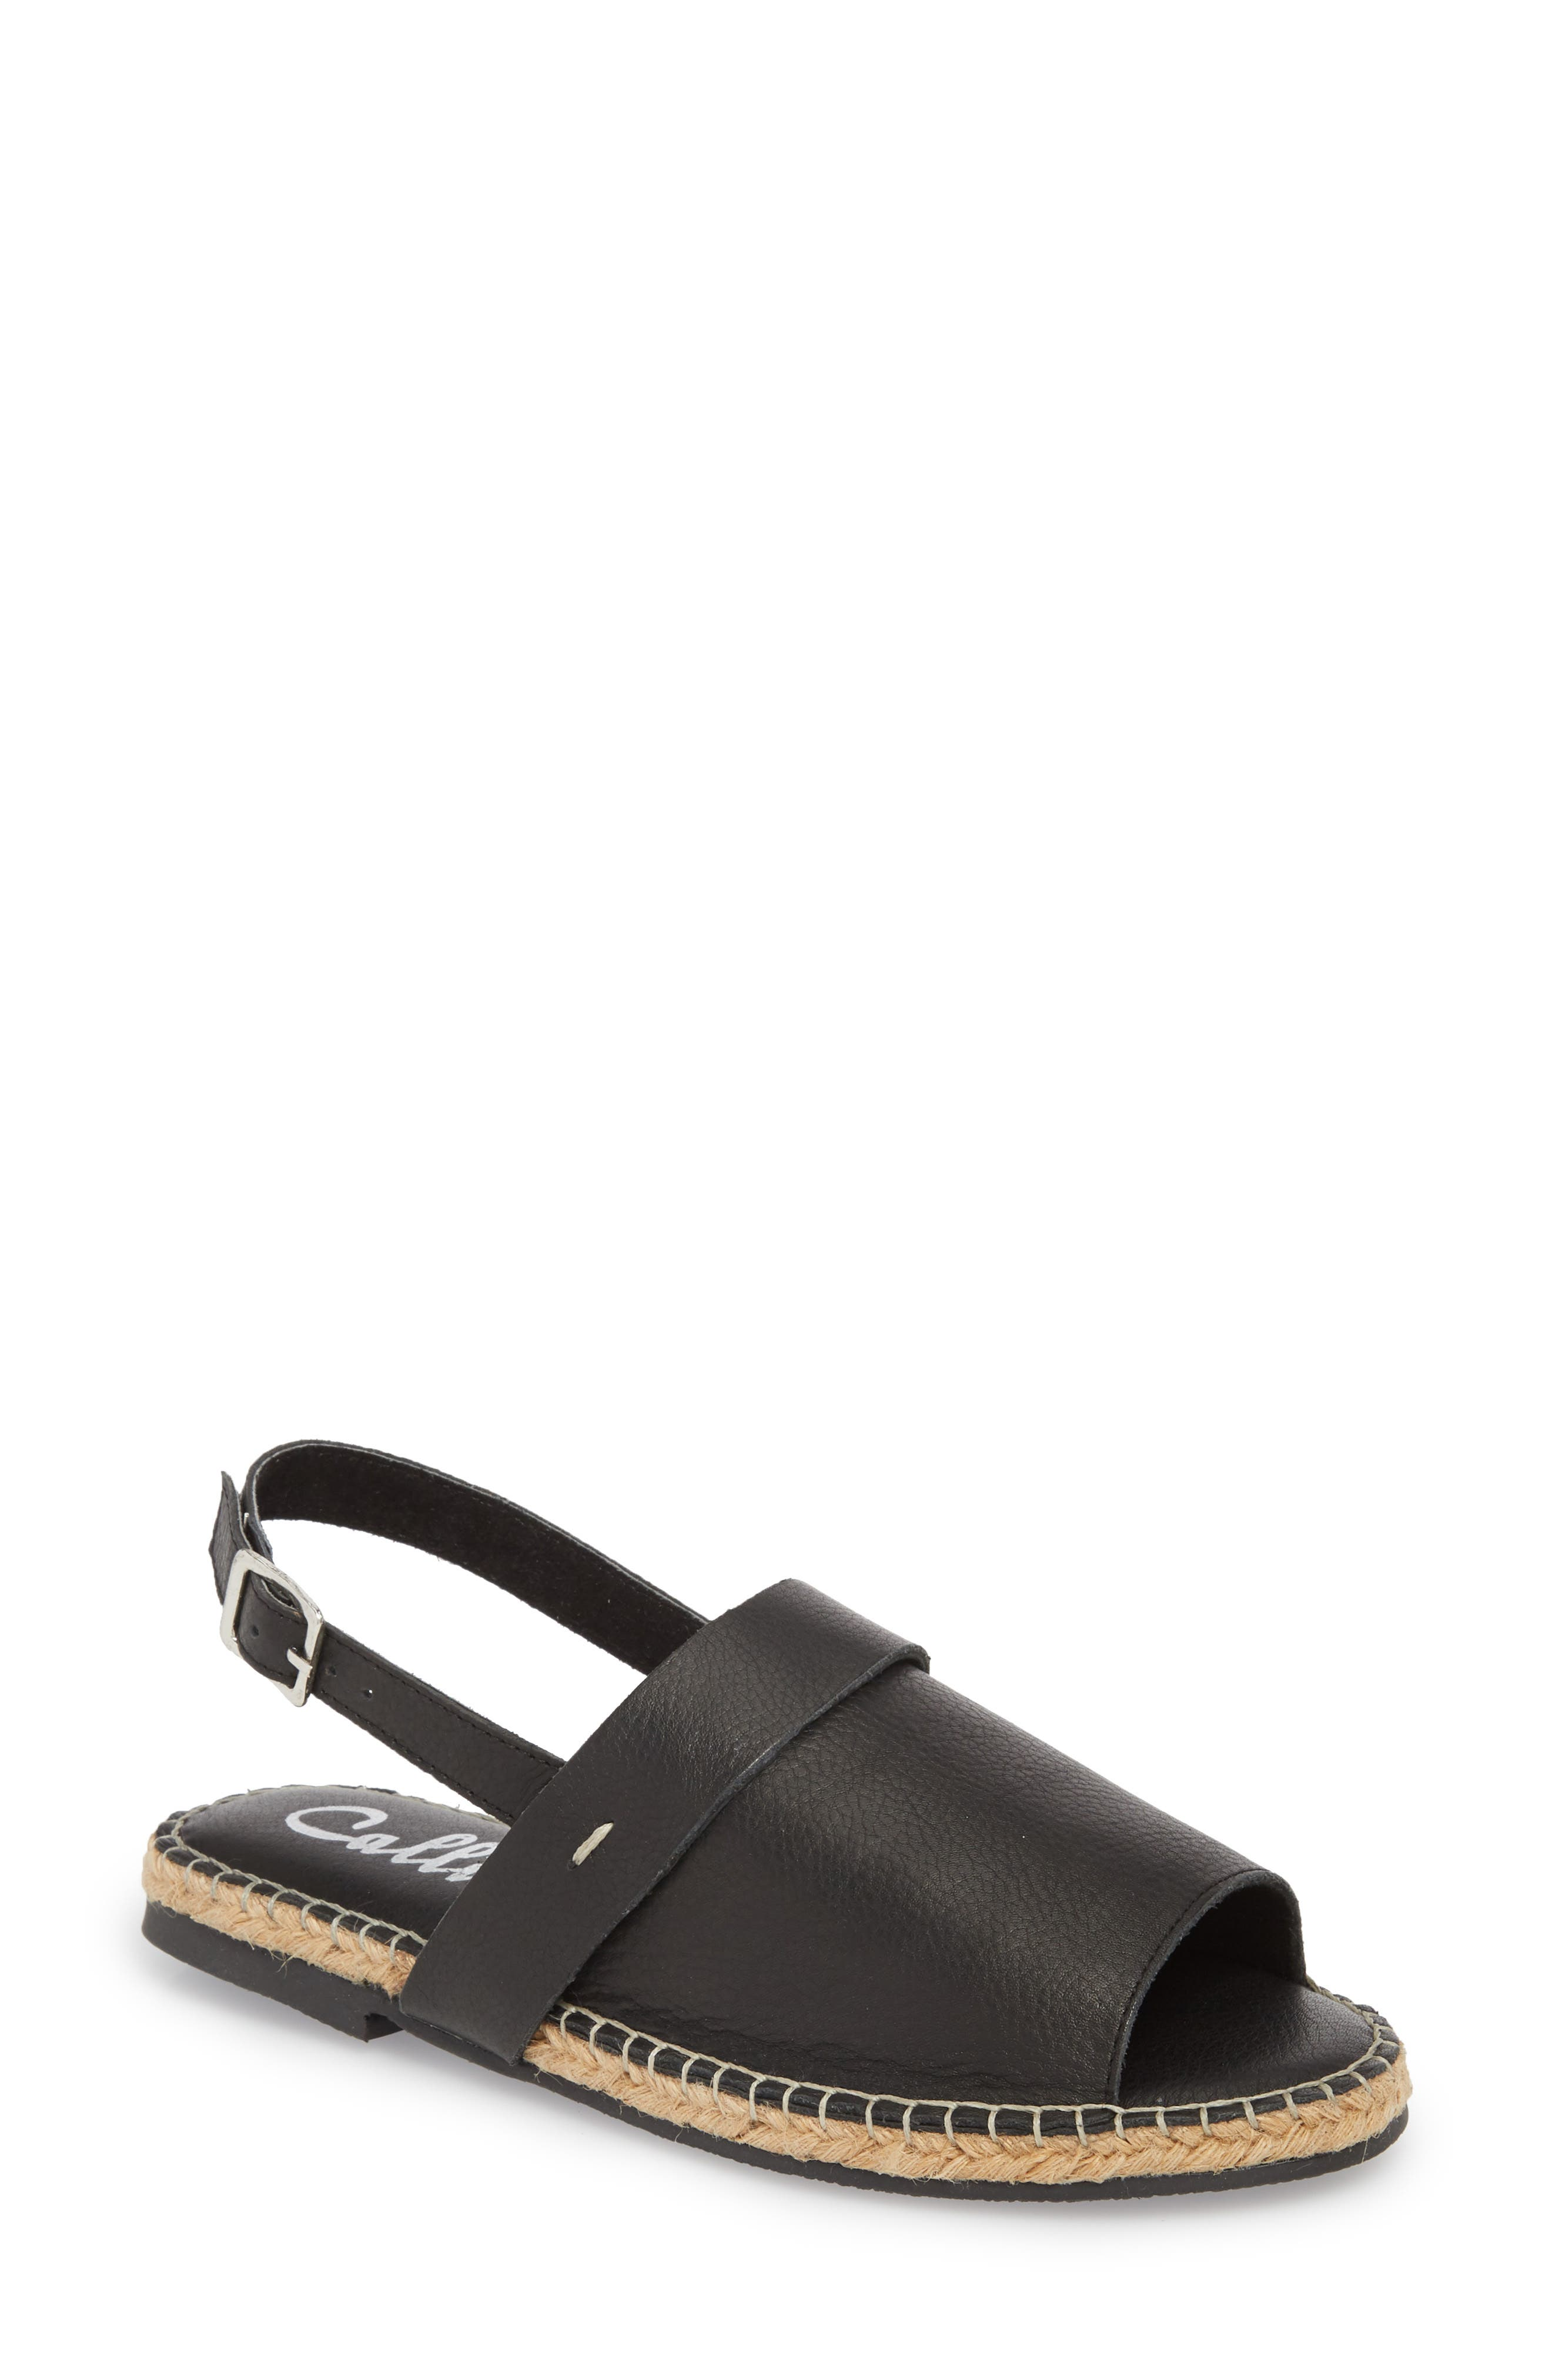 Turn Key Espadrille Sandal,                             Main thumbnail 1, color,                             BLACK LEATHER